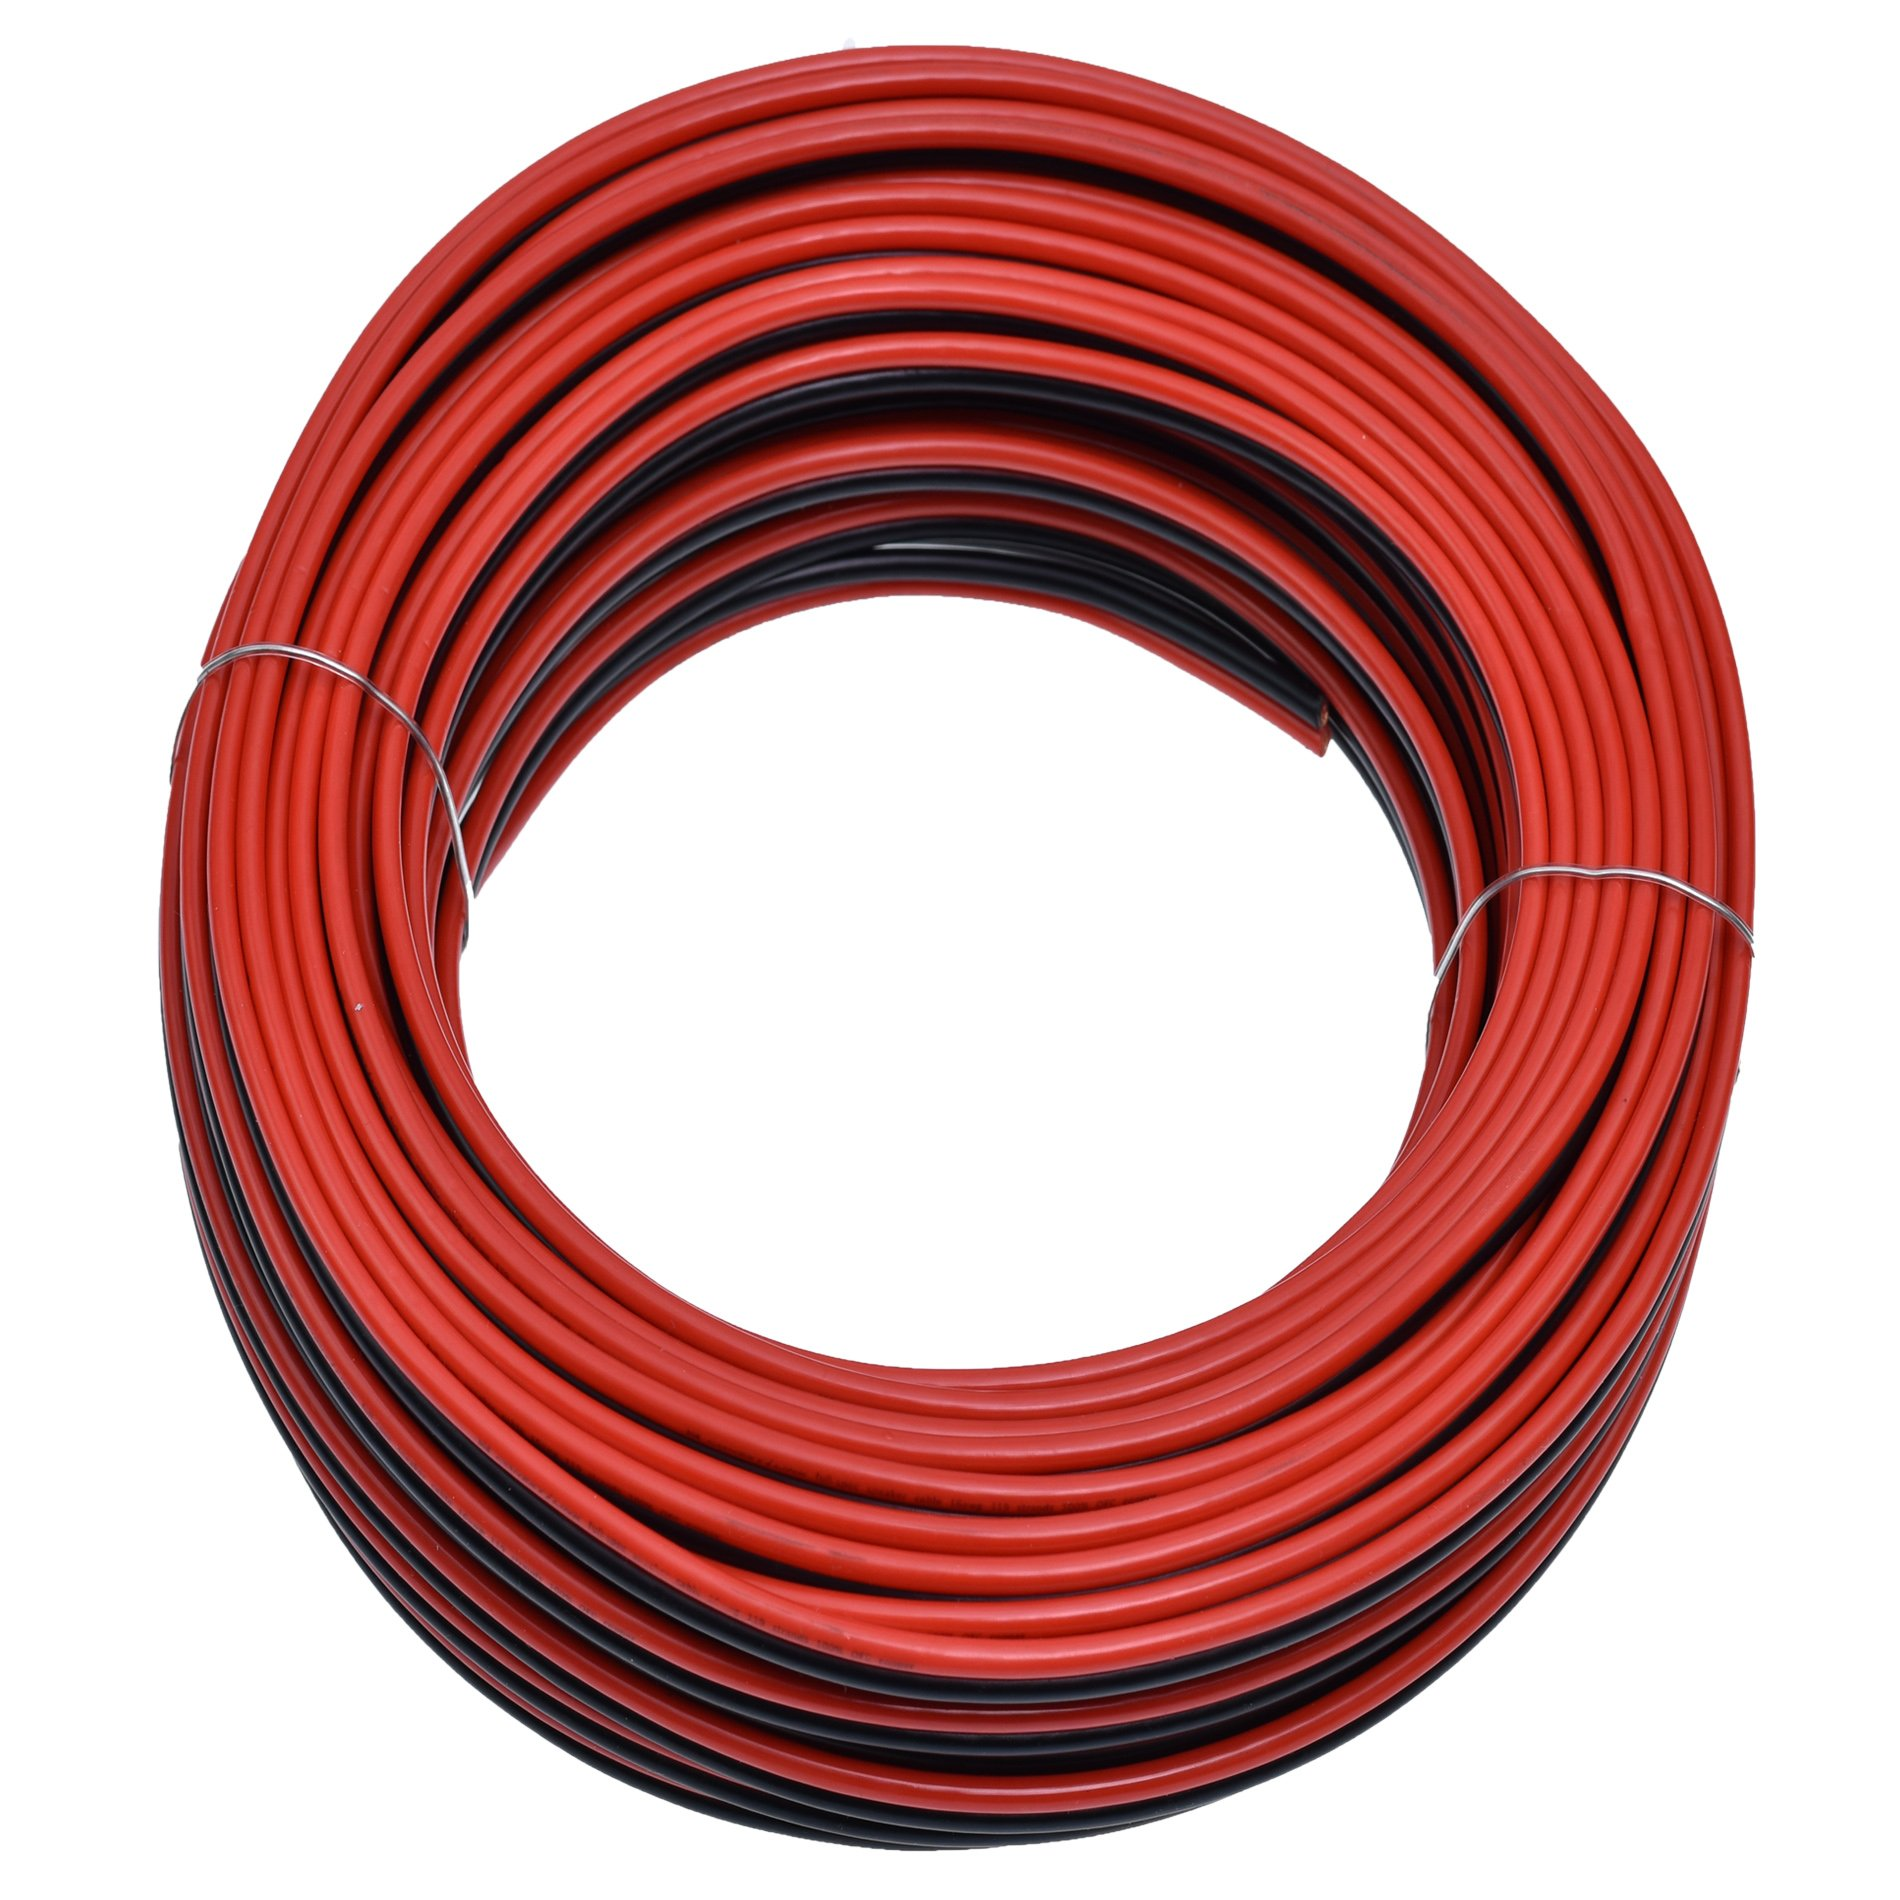 Conext Link PSC-RB Series Parallel Red Black Speaker Cables Full Gauge Oxygen Free Copper Zip Primary Wire (100 feet, 16 Gauge) by Conext Link